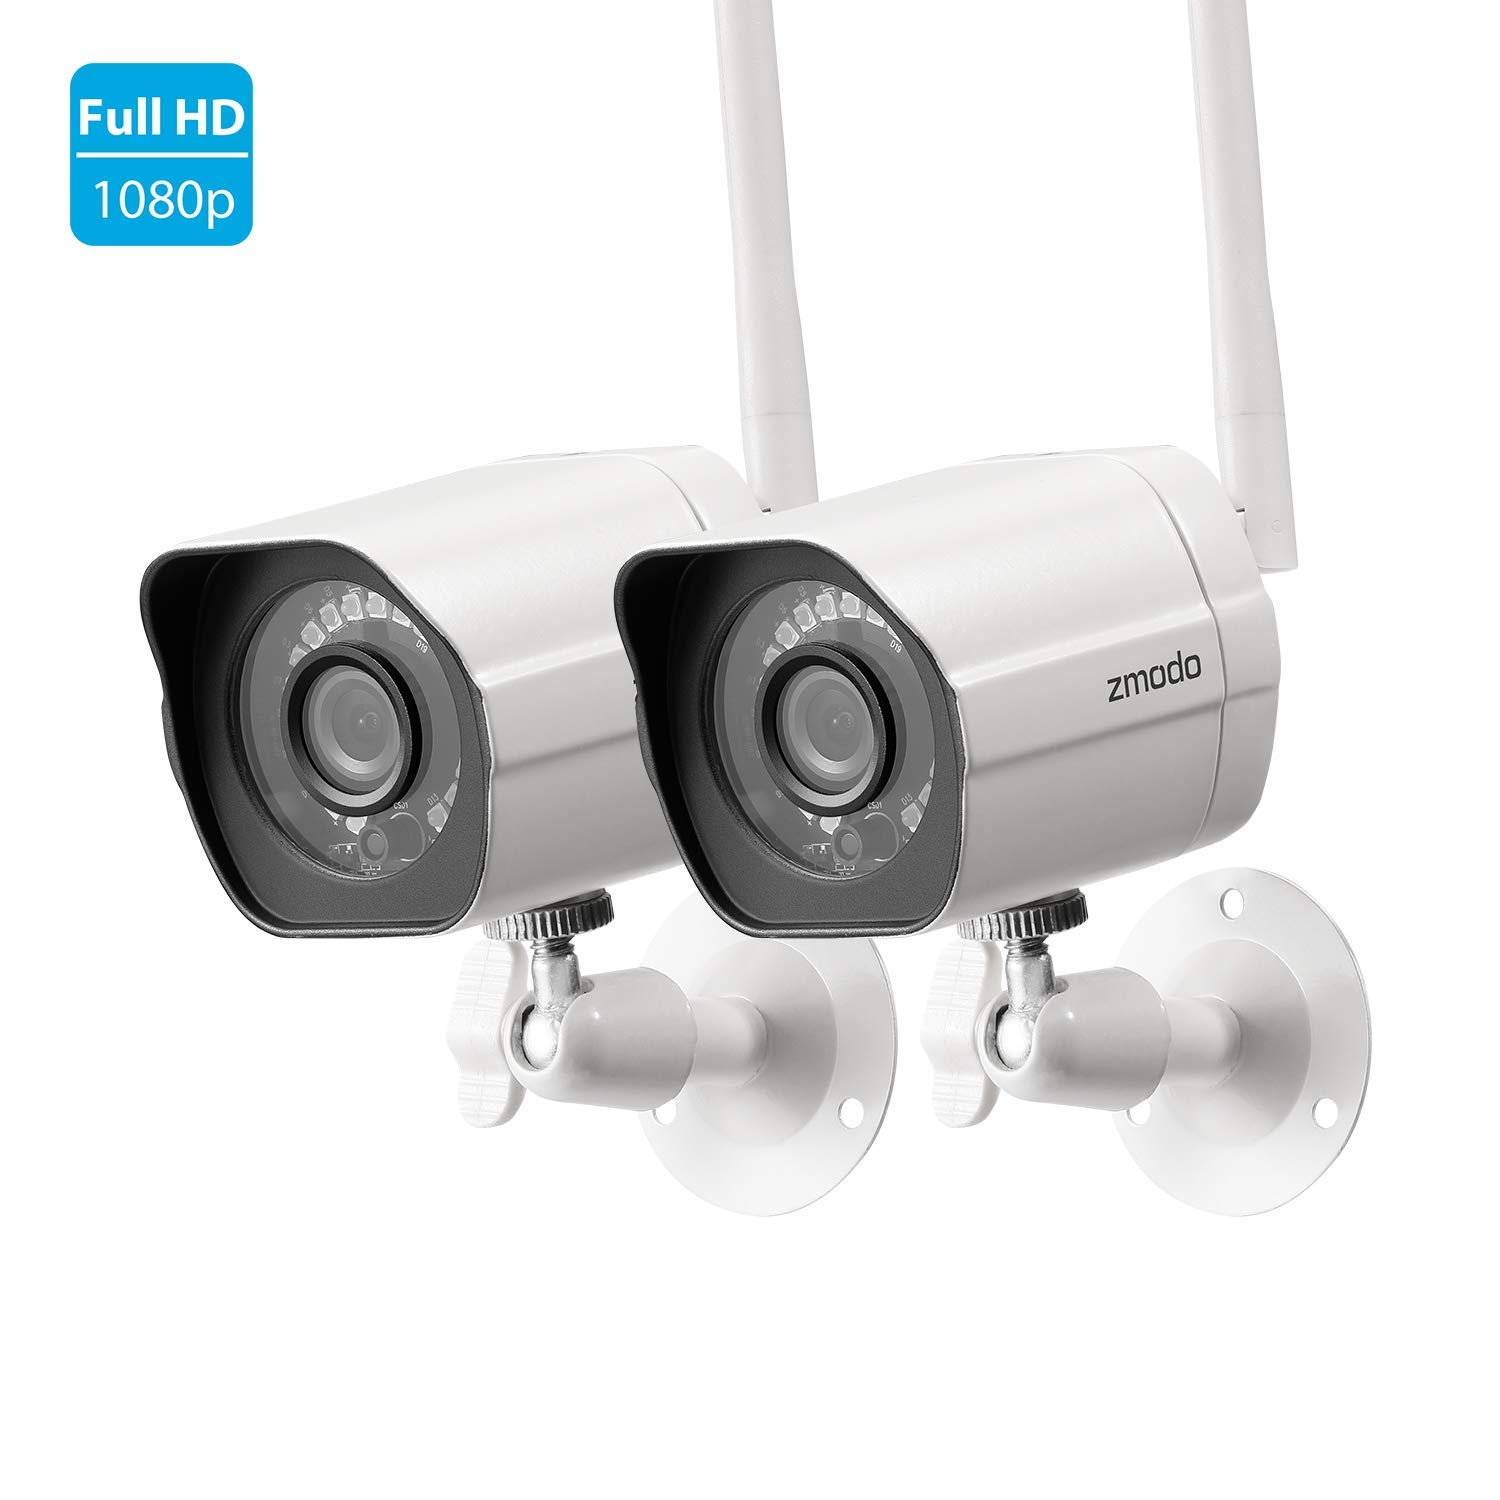 Zmodo Outdoor Wireless Security Compatible